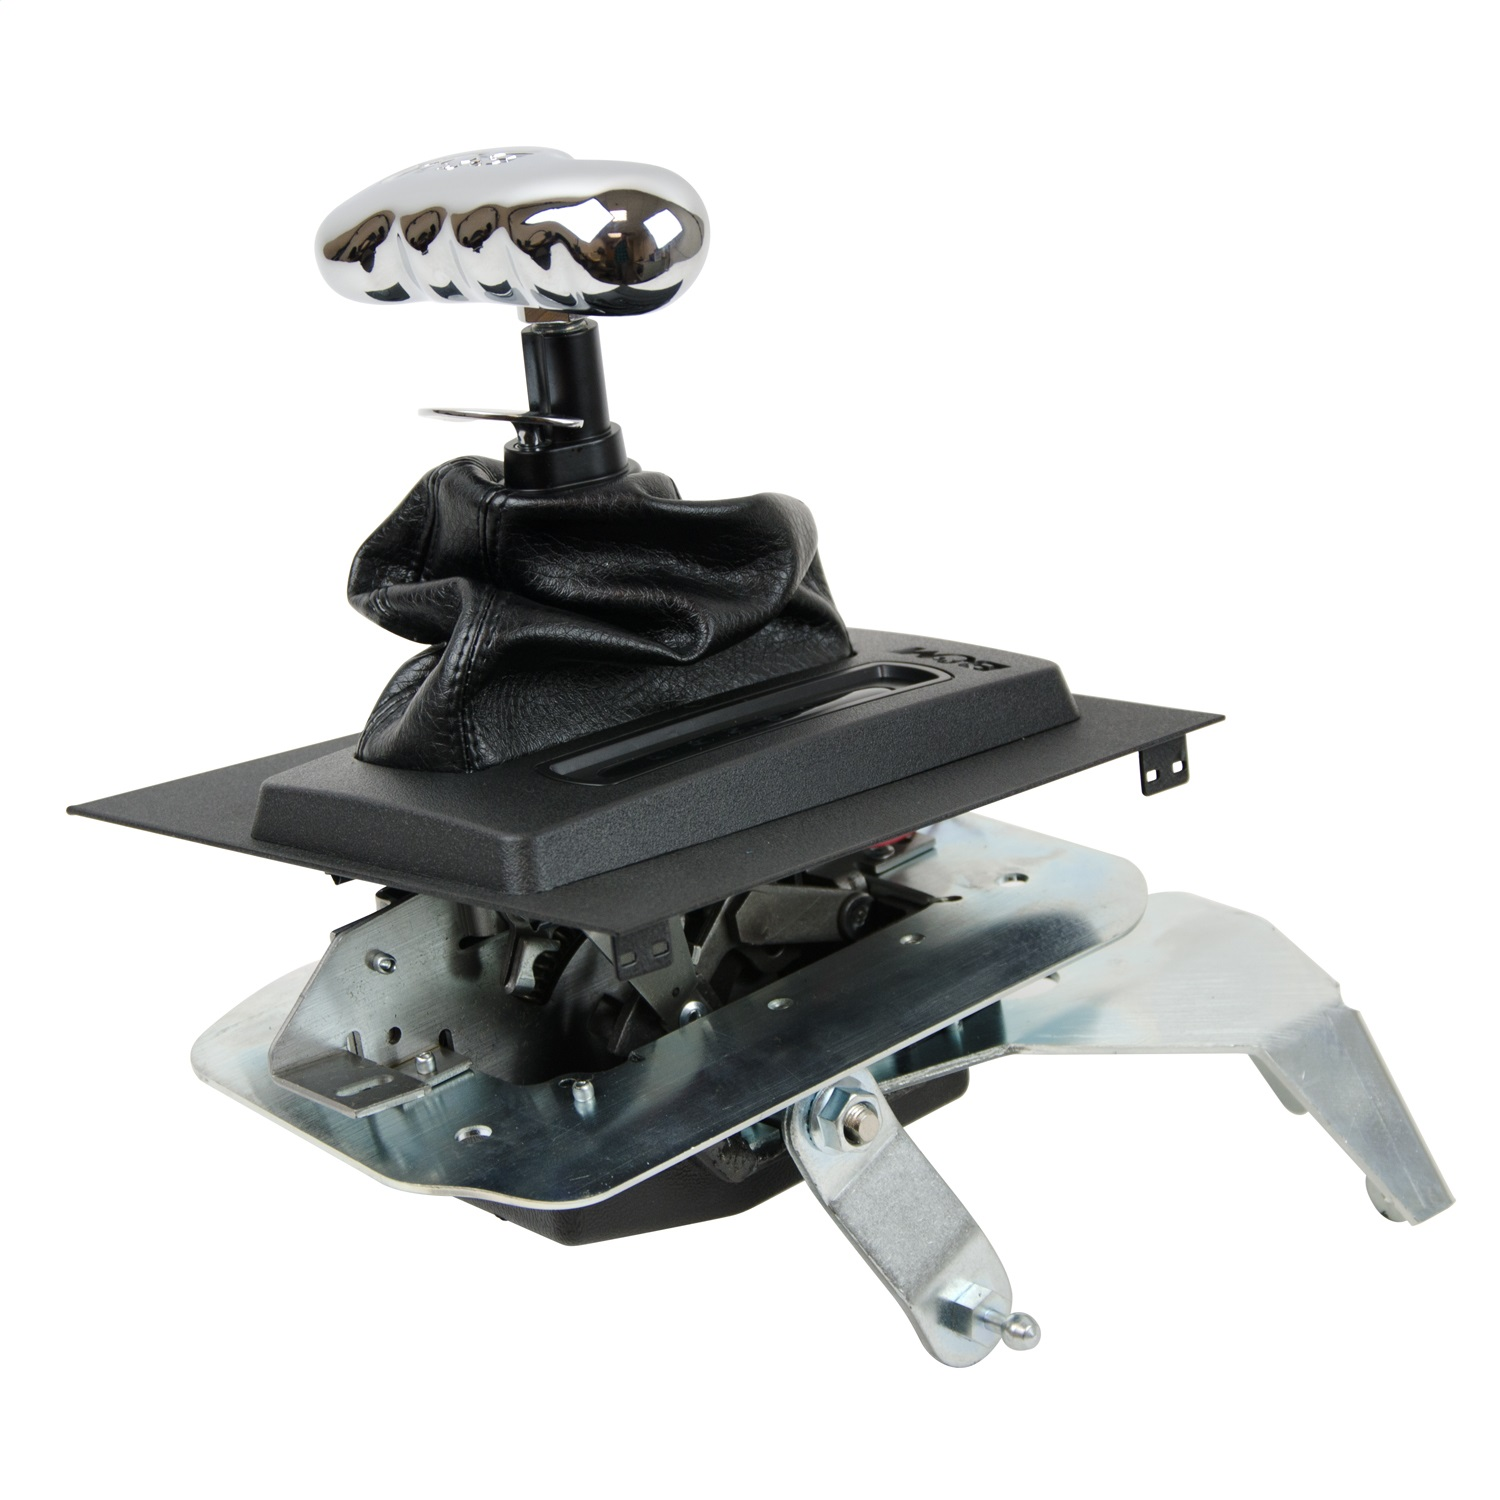 b m 81002 console hammer automatic transmission shifter assembly fits mustang ebay. Black Bedroom Furniture Sets. Home Design Ideas